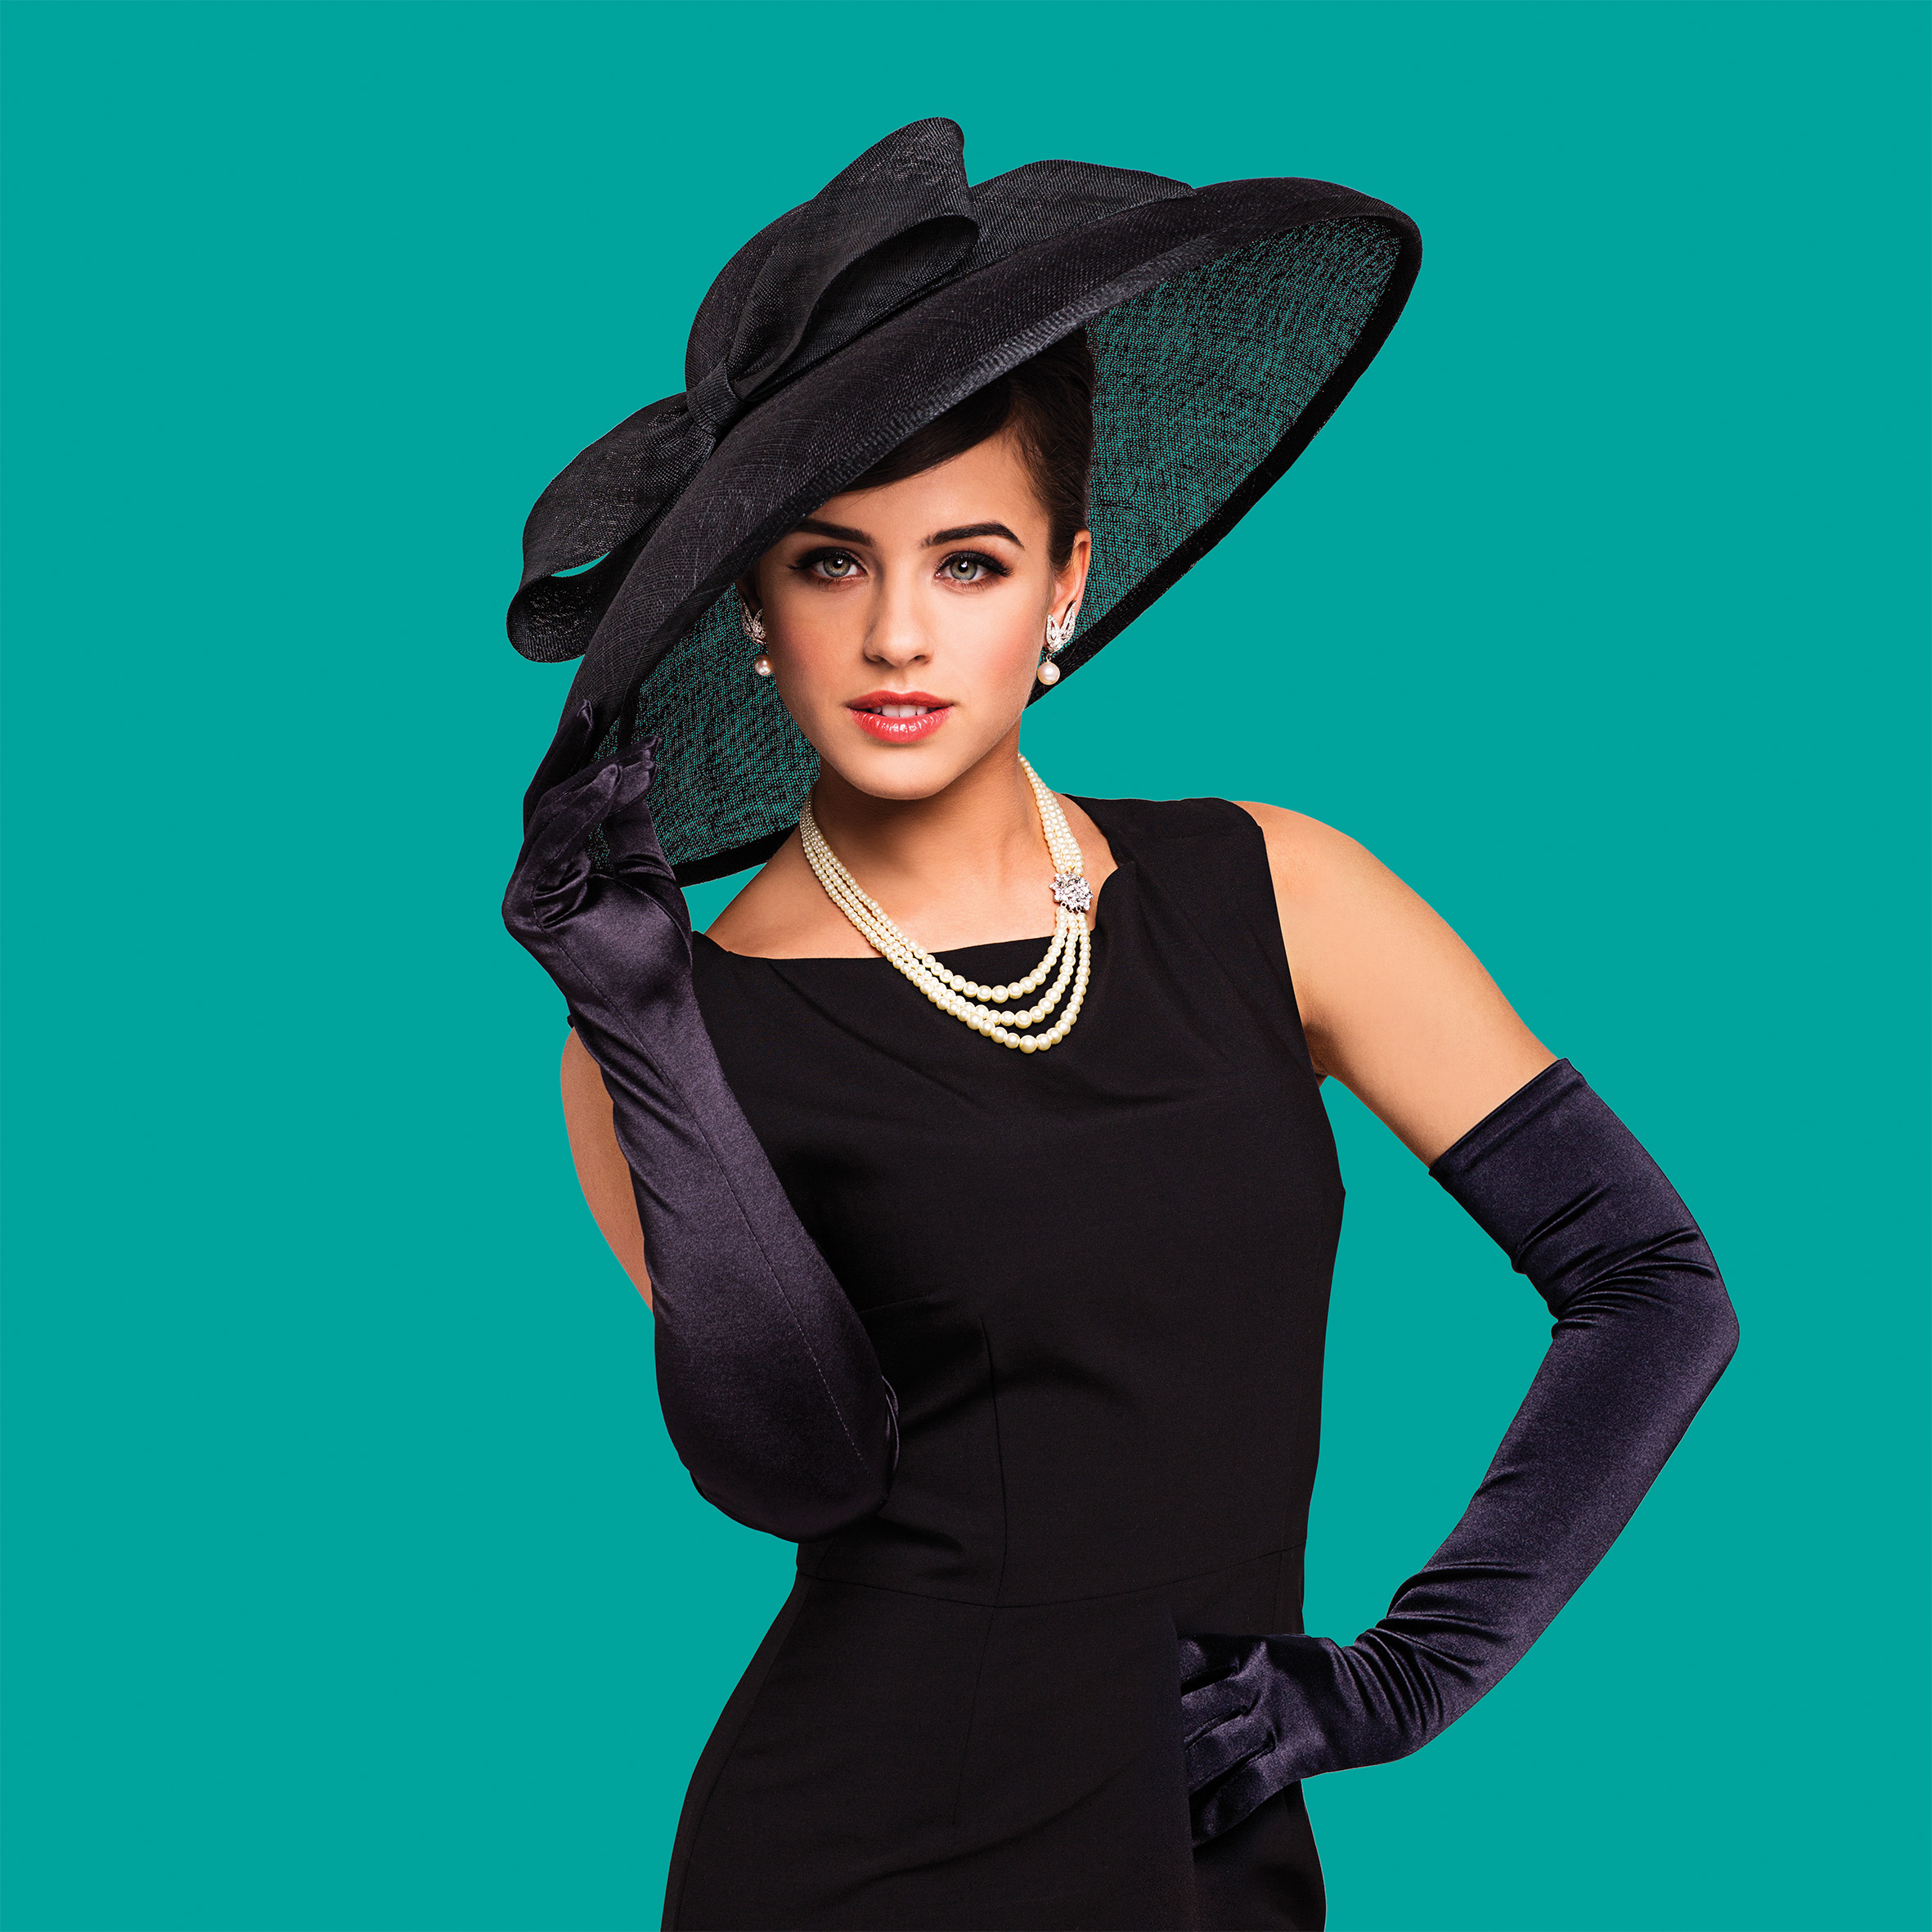 Breakfast at Tiffany's. Georgia May Foote as Holly Golightly.